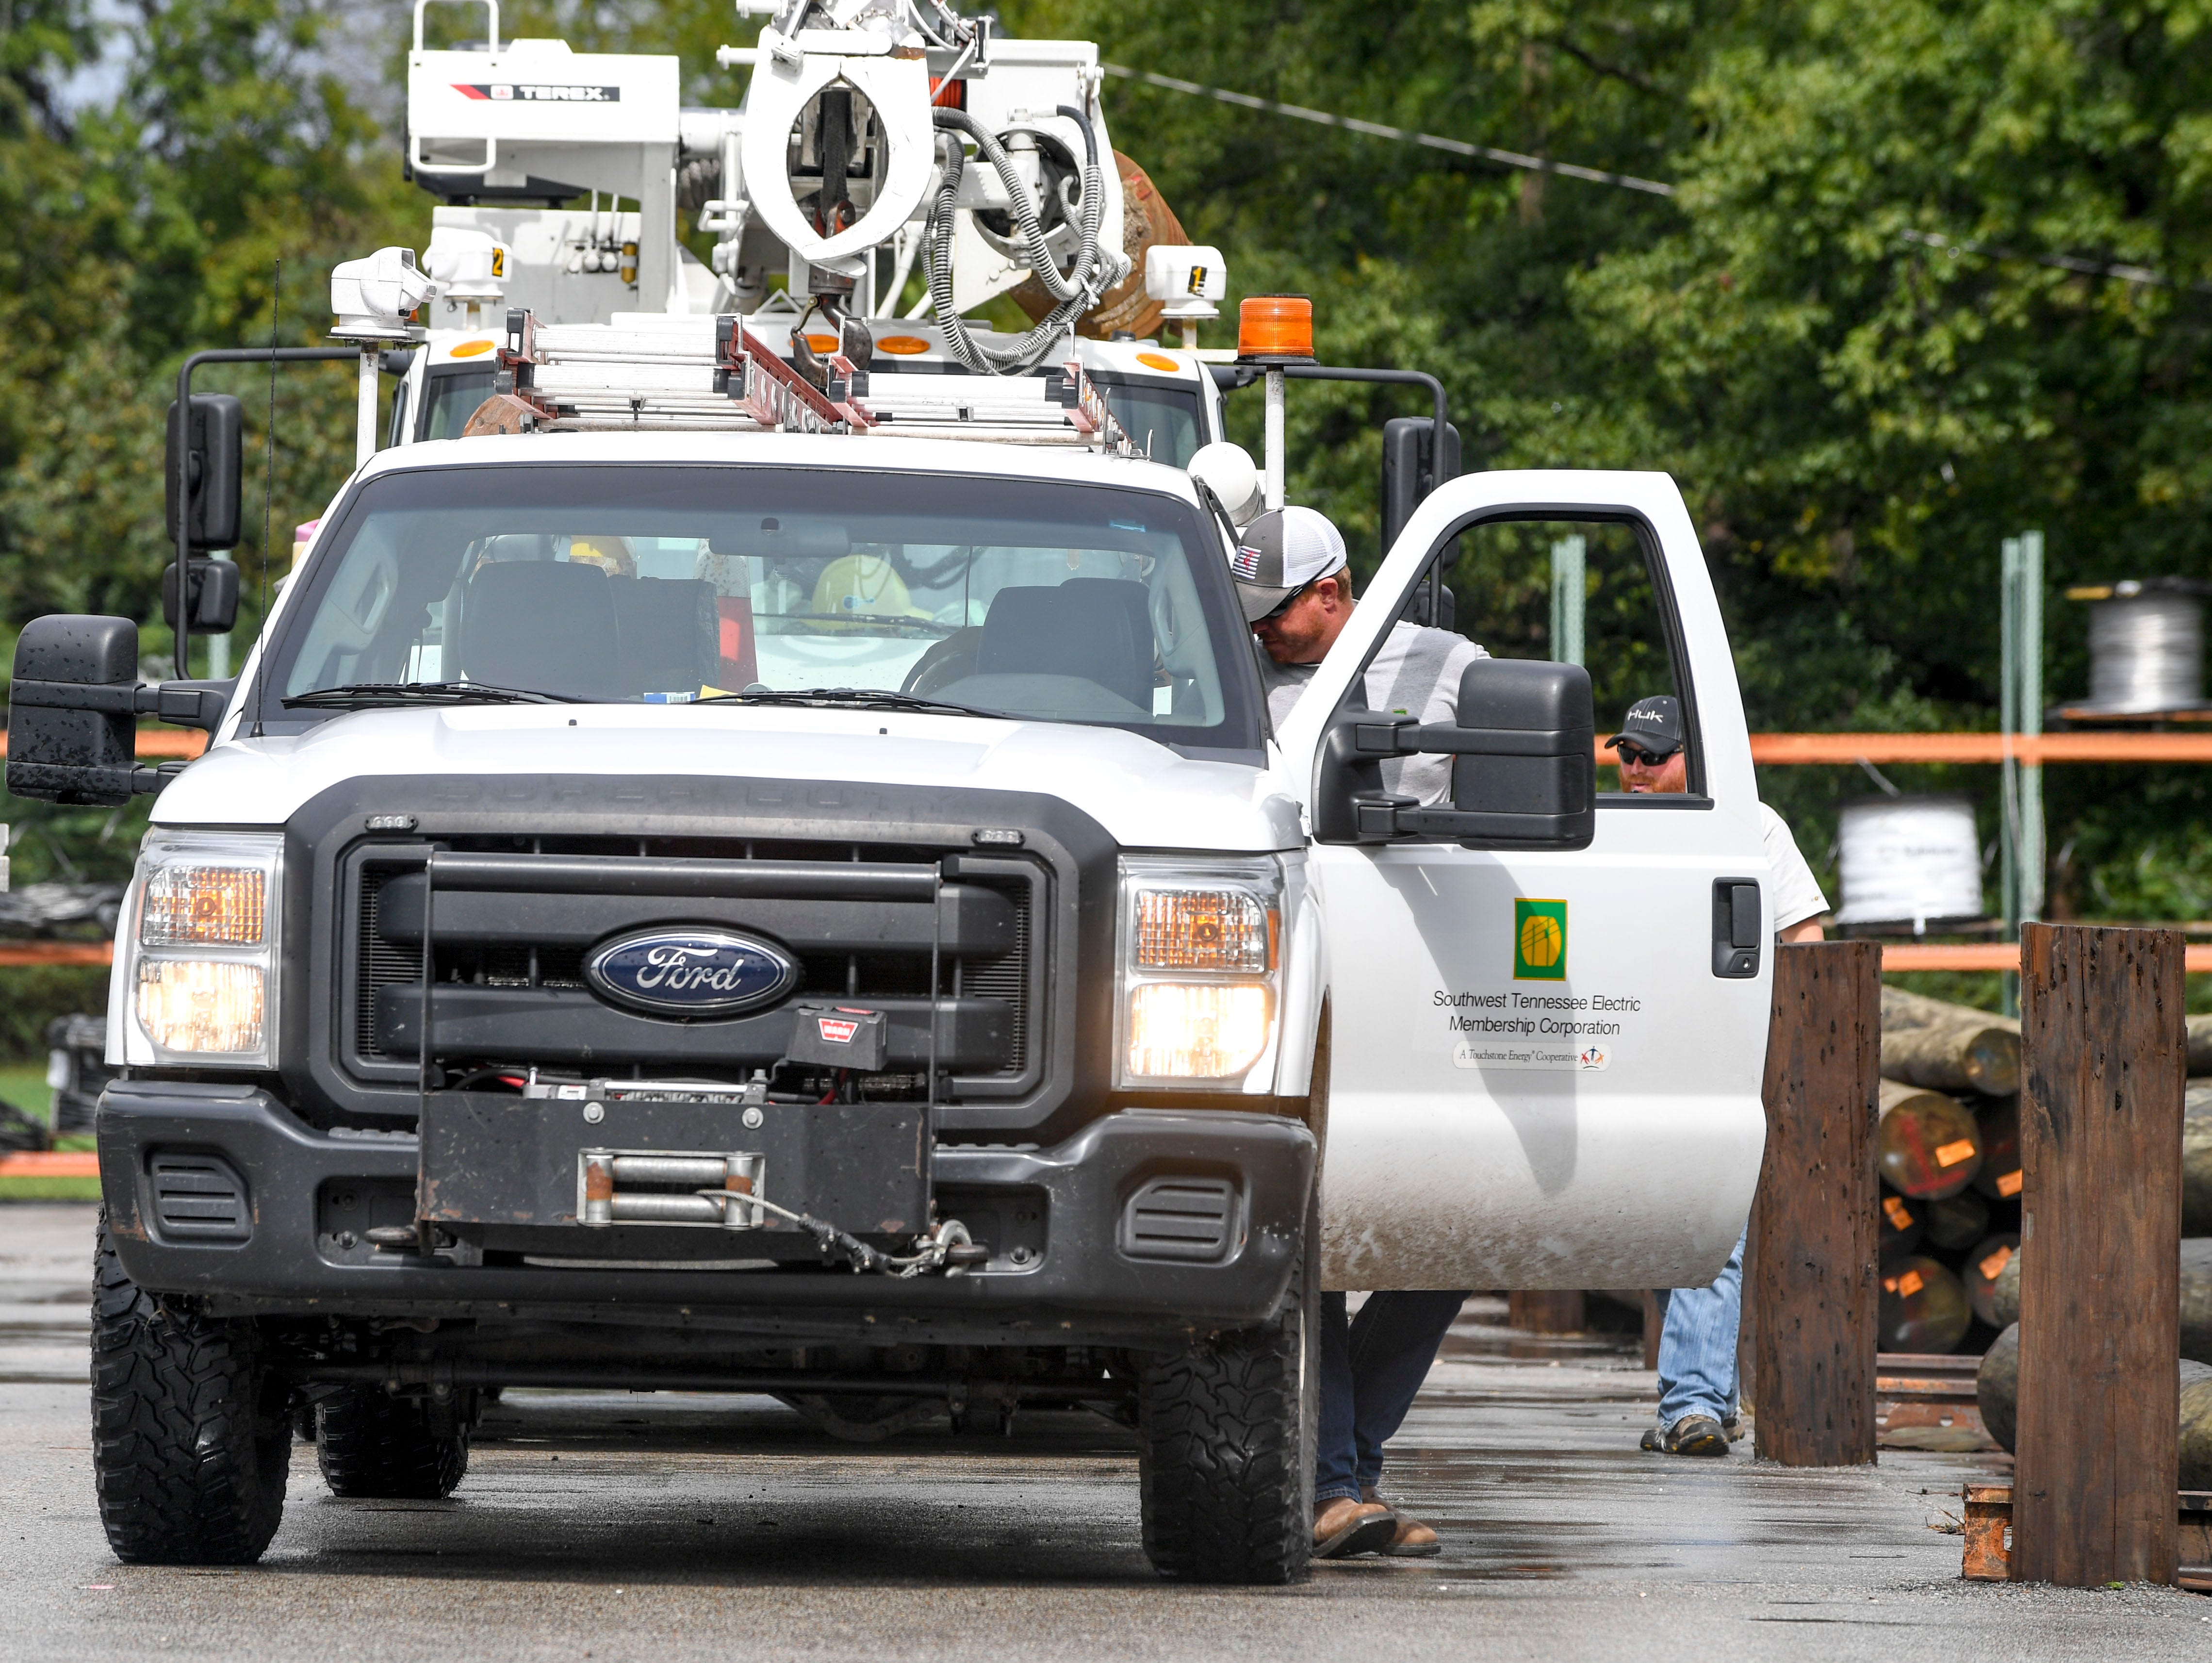 Linemen from Southwest Tennessee Electric arrive and step out of their work trucks after working in North Carolina for a week at Southwest Tennessee Electric in Jackson, Tenn., Monday, Sept. 24, 2018.